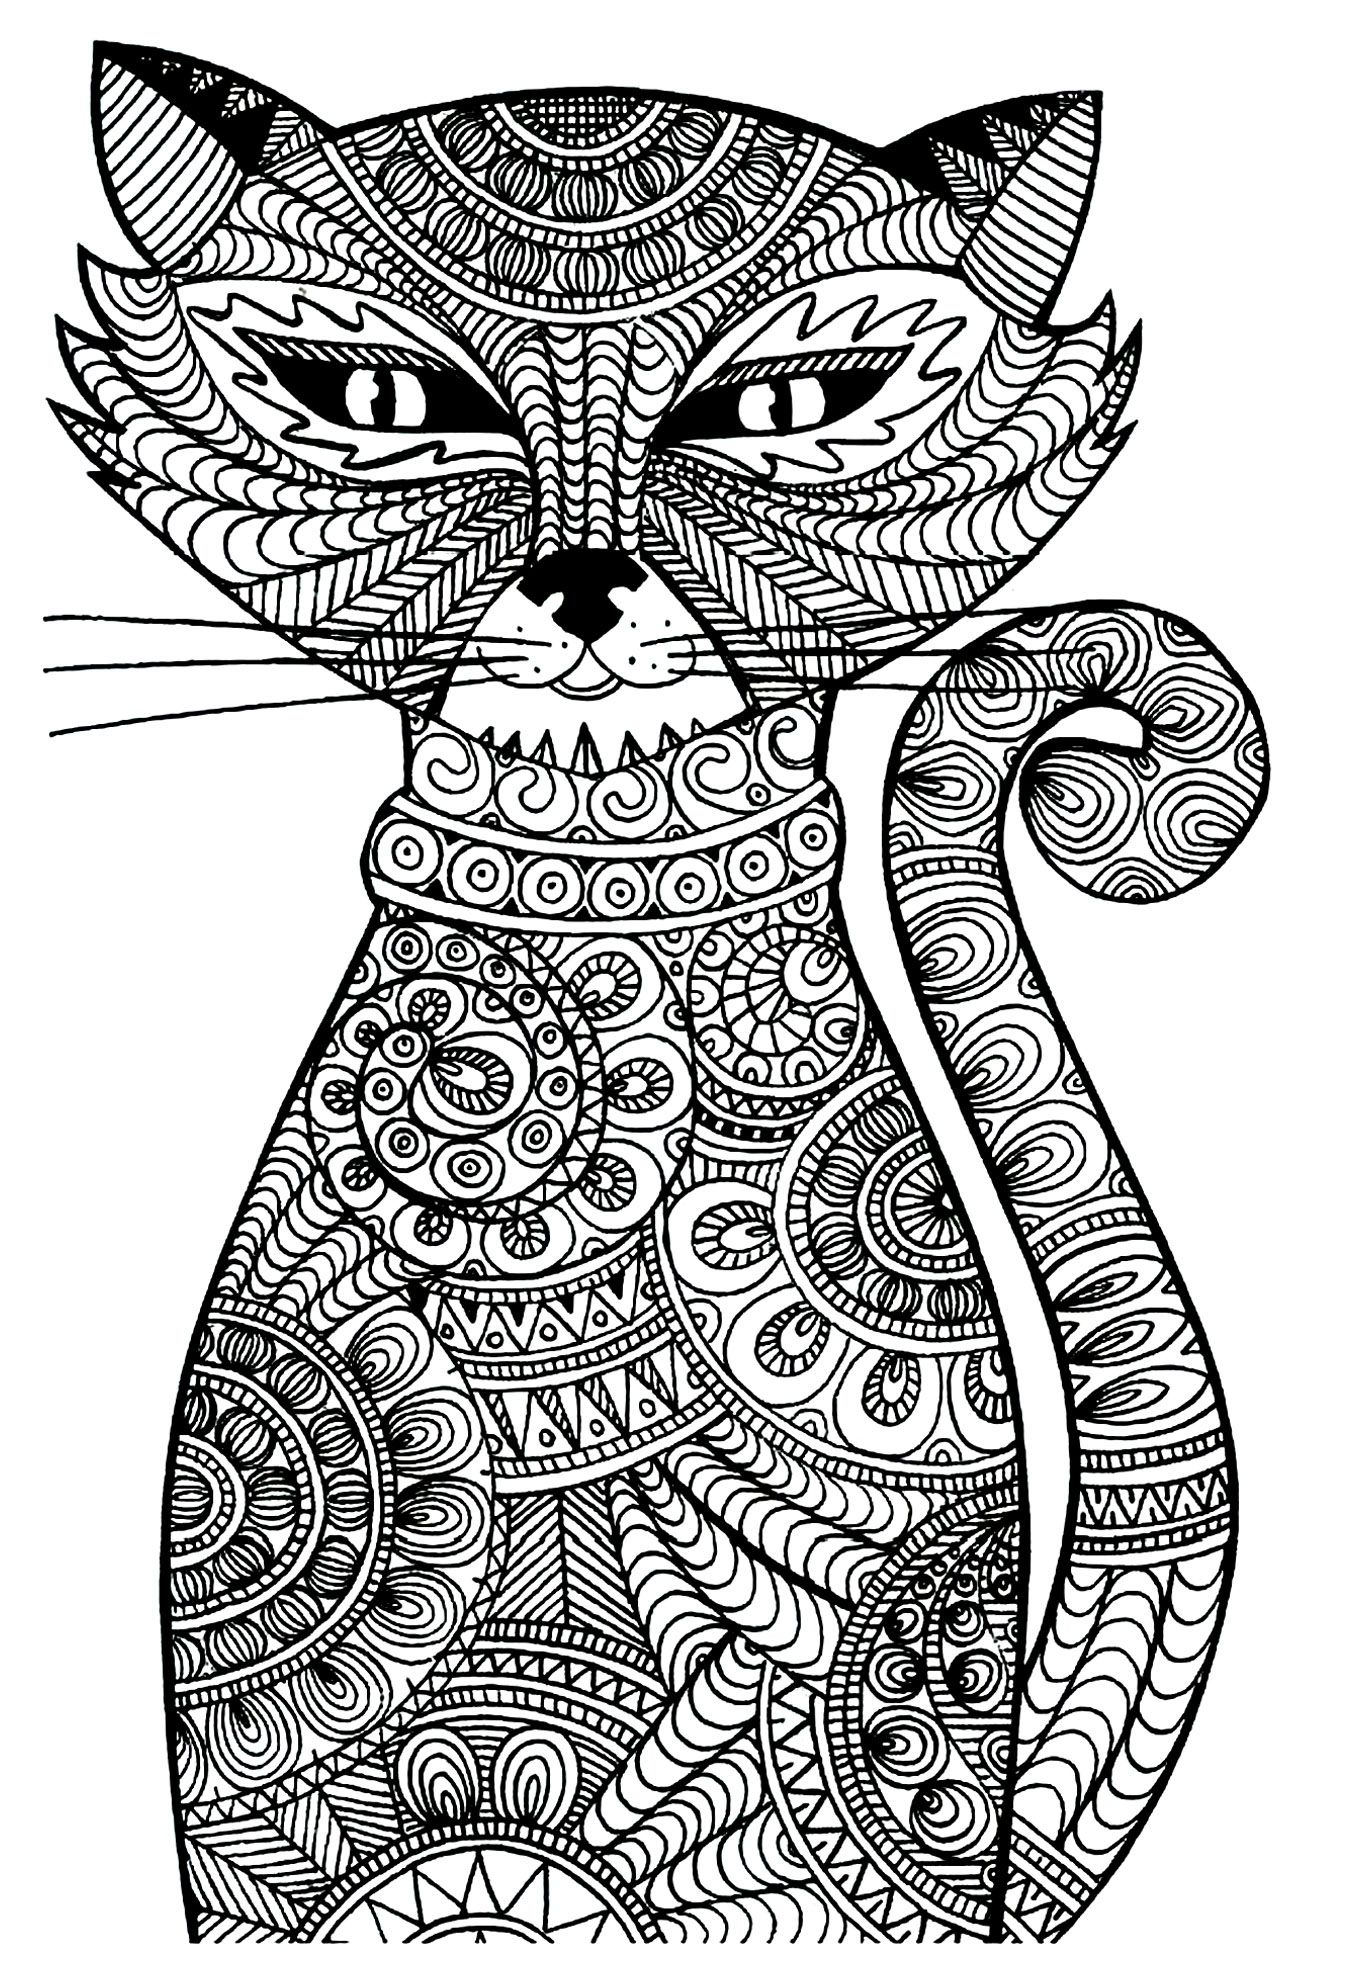 Coloring pages for adults zentangle - 100 Free Coloring Pages For Adults And Children